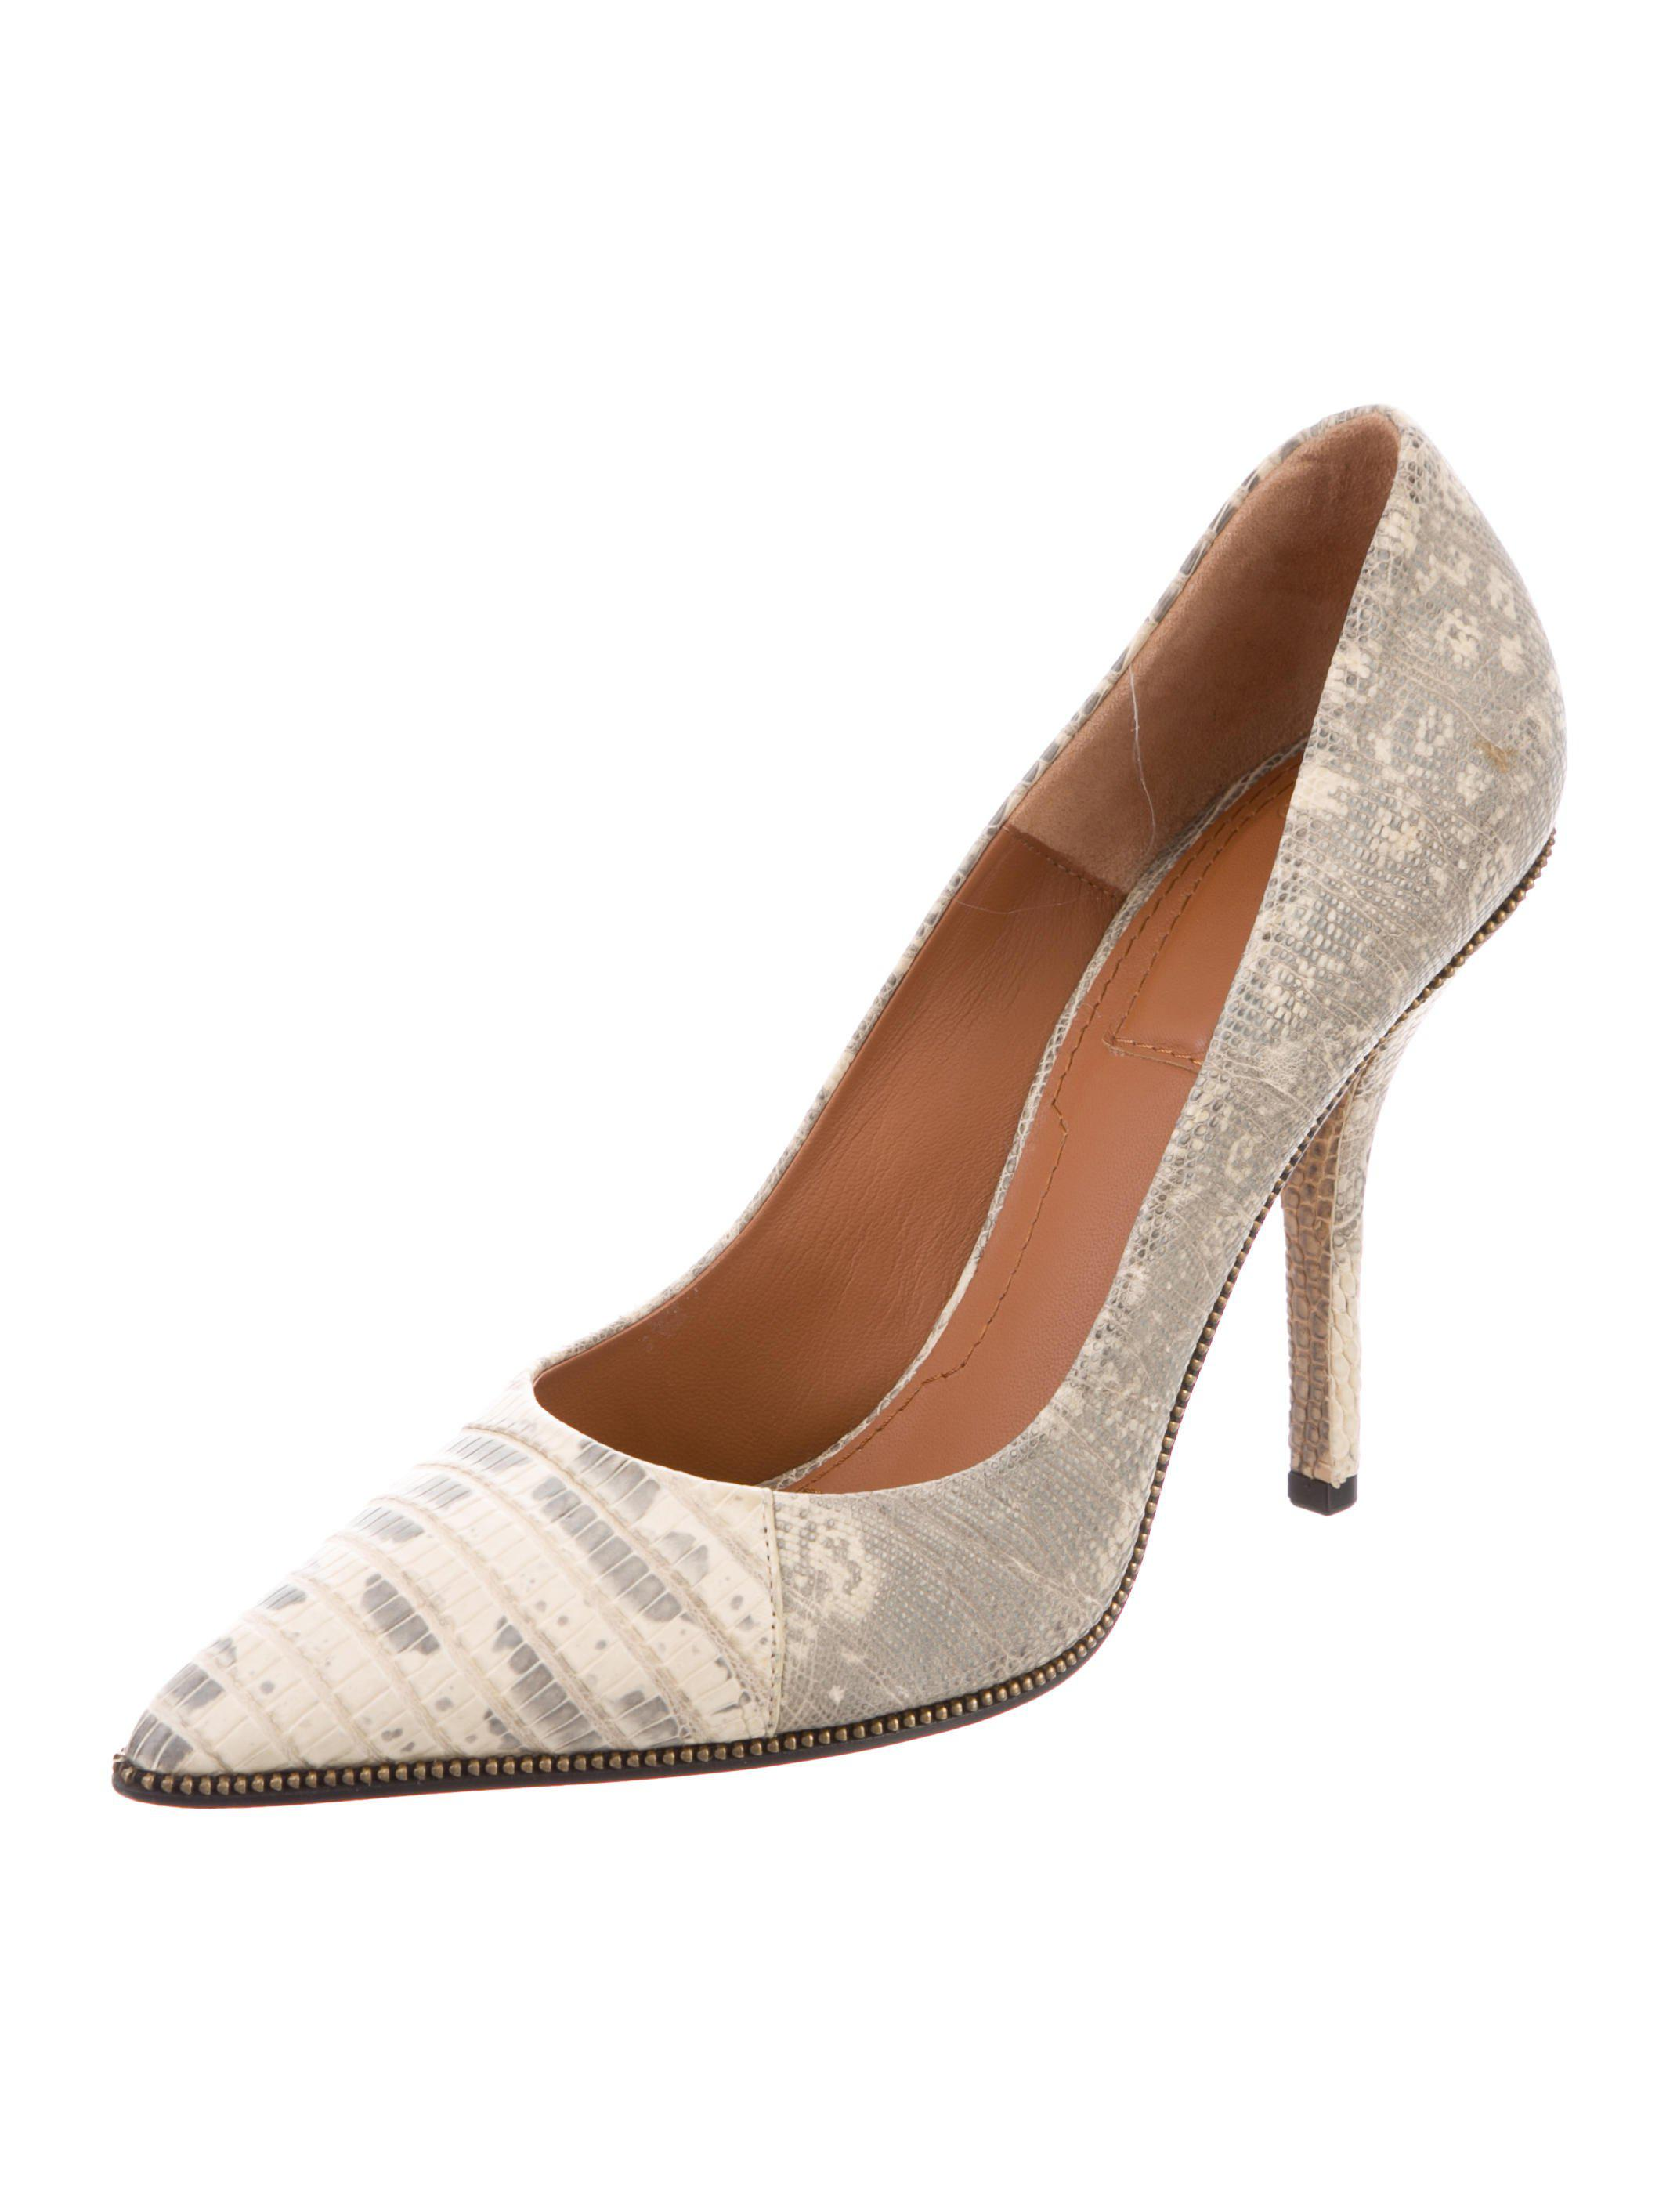 deals cheap online Givenchy Lizard Pointed-Toe Pumps sale eastbay with credit card online discount recommend cheap price for sale 63oQEci6L